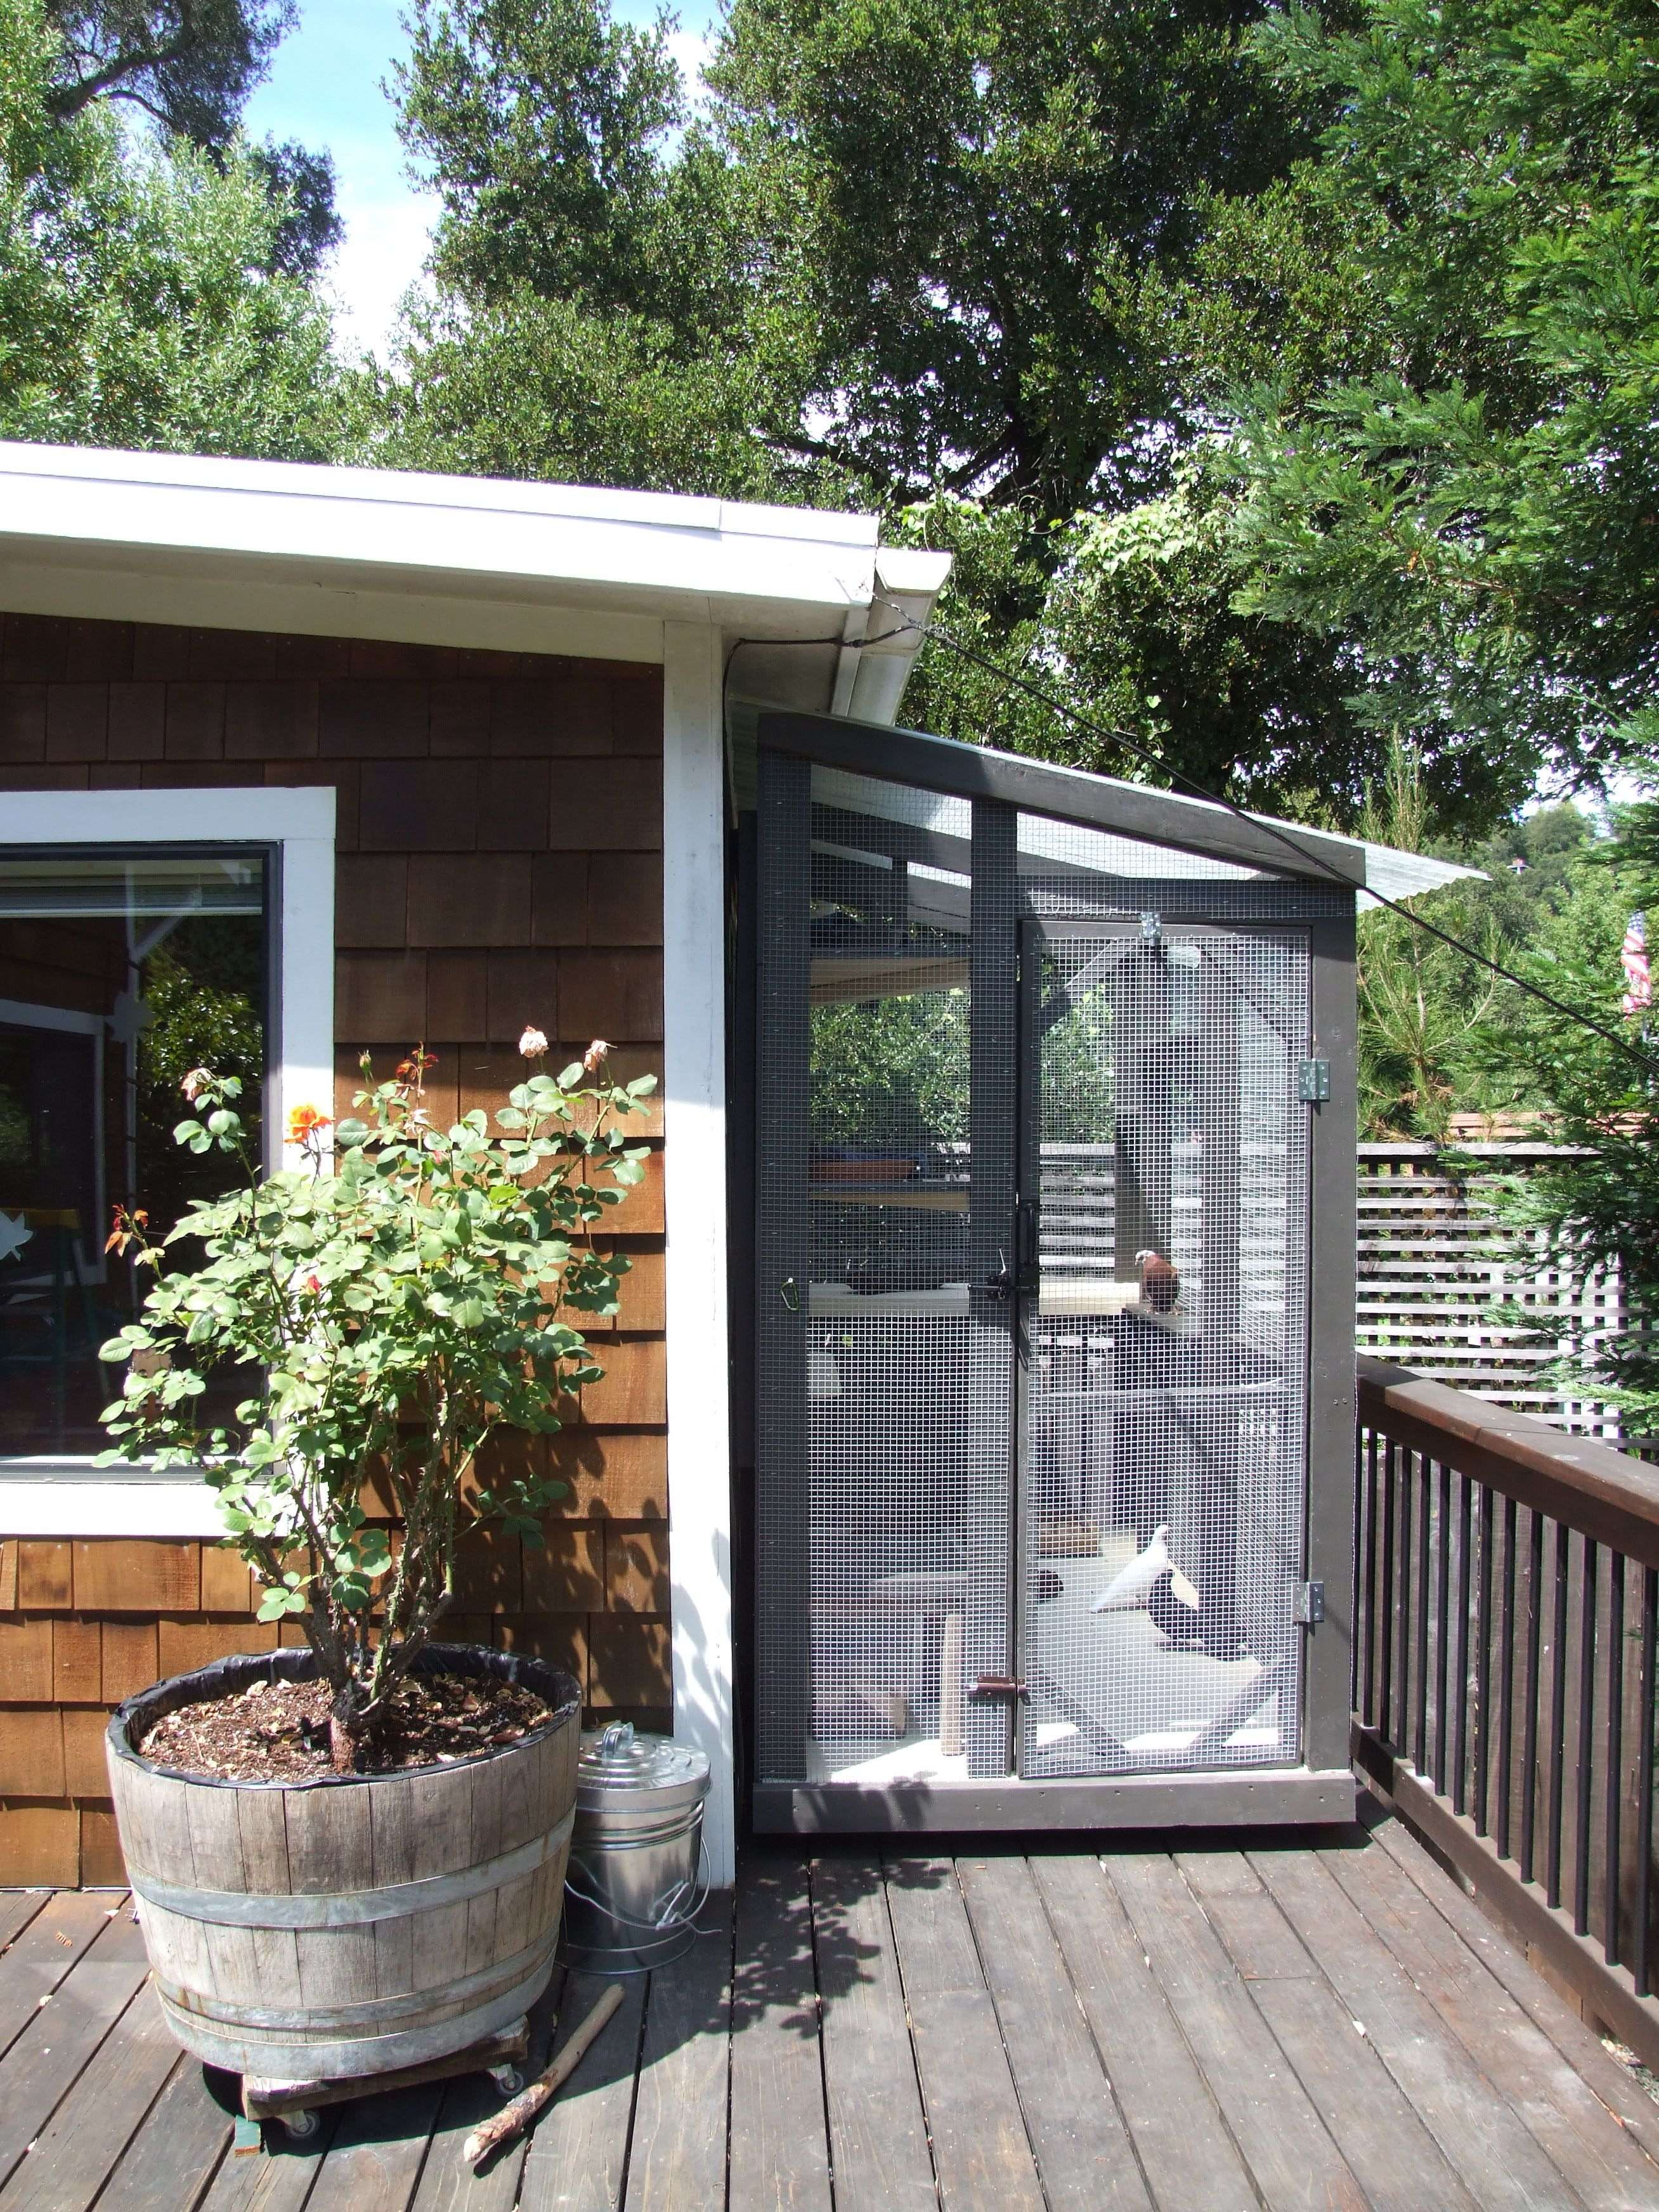 How to Create an Aviary for Rescued Pigeons or Doves |